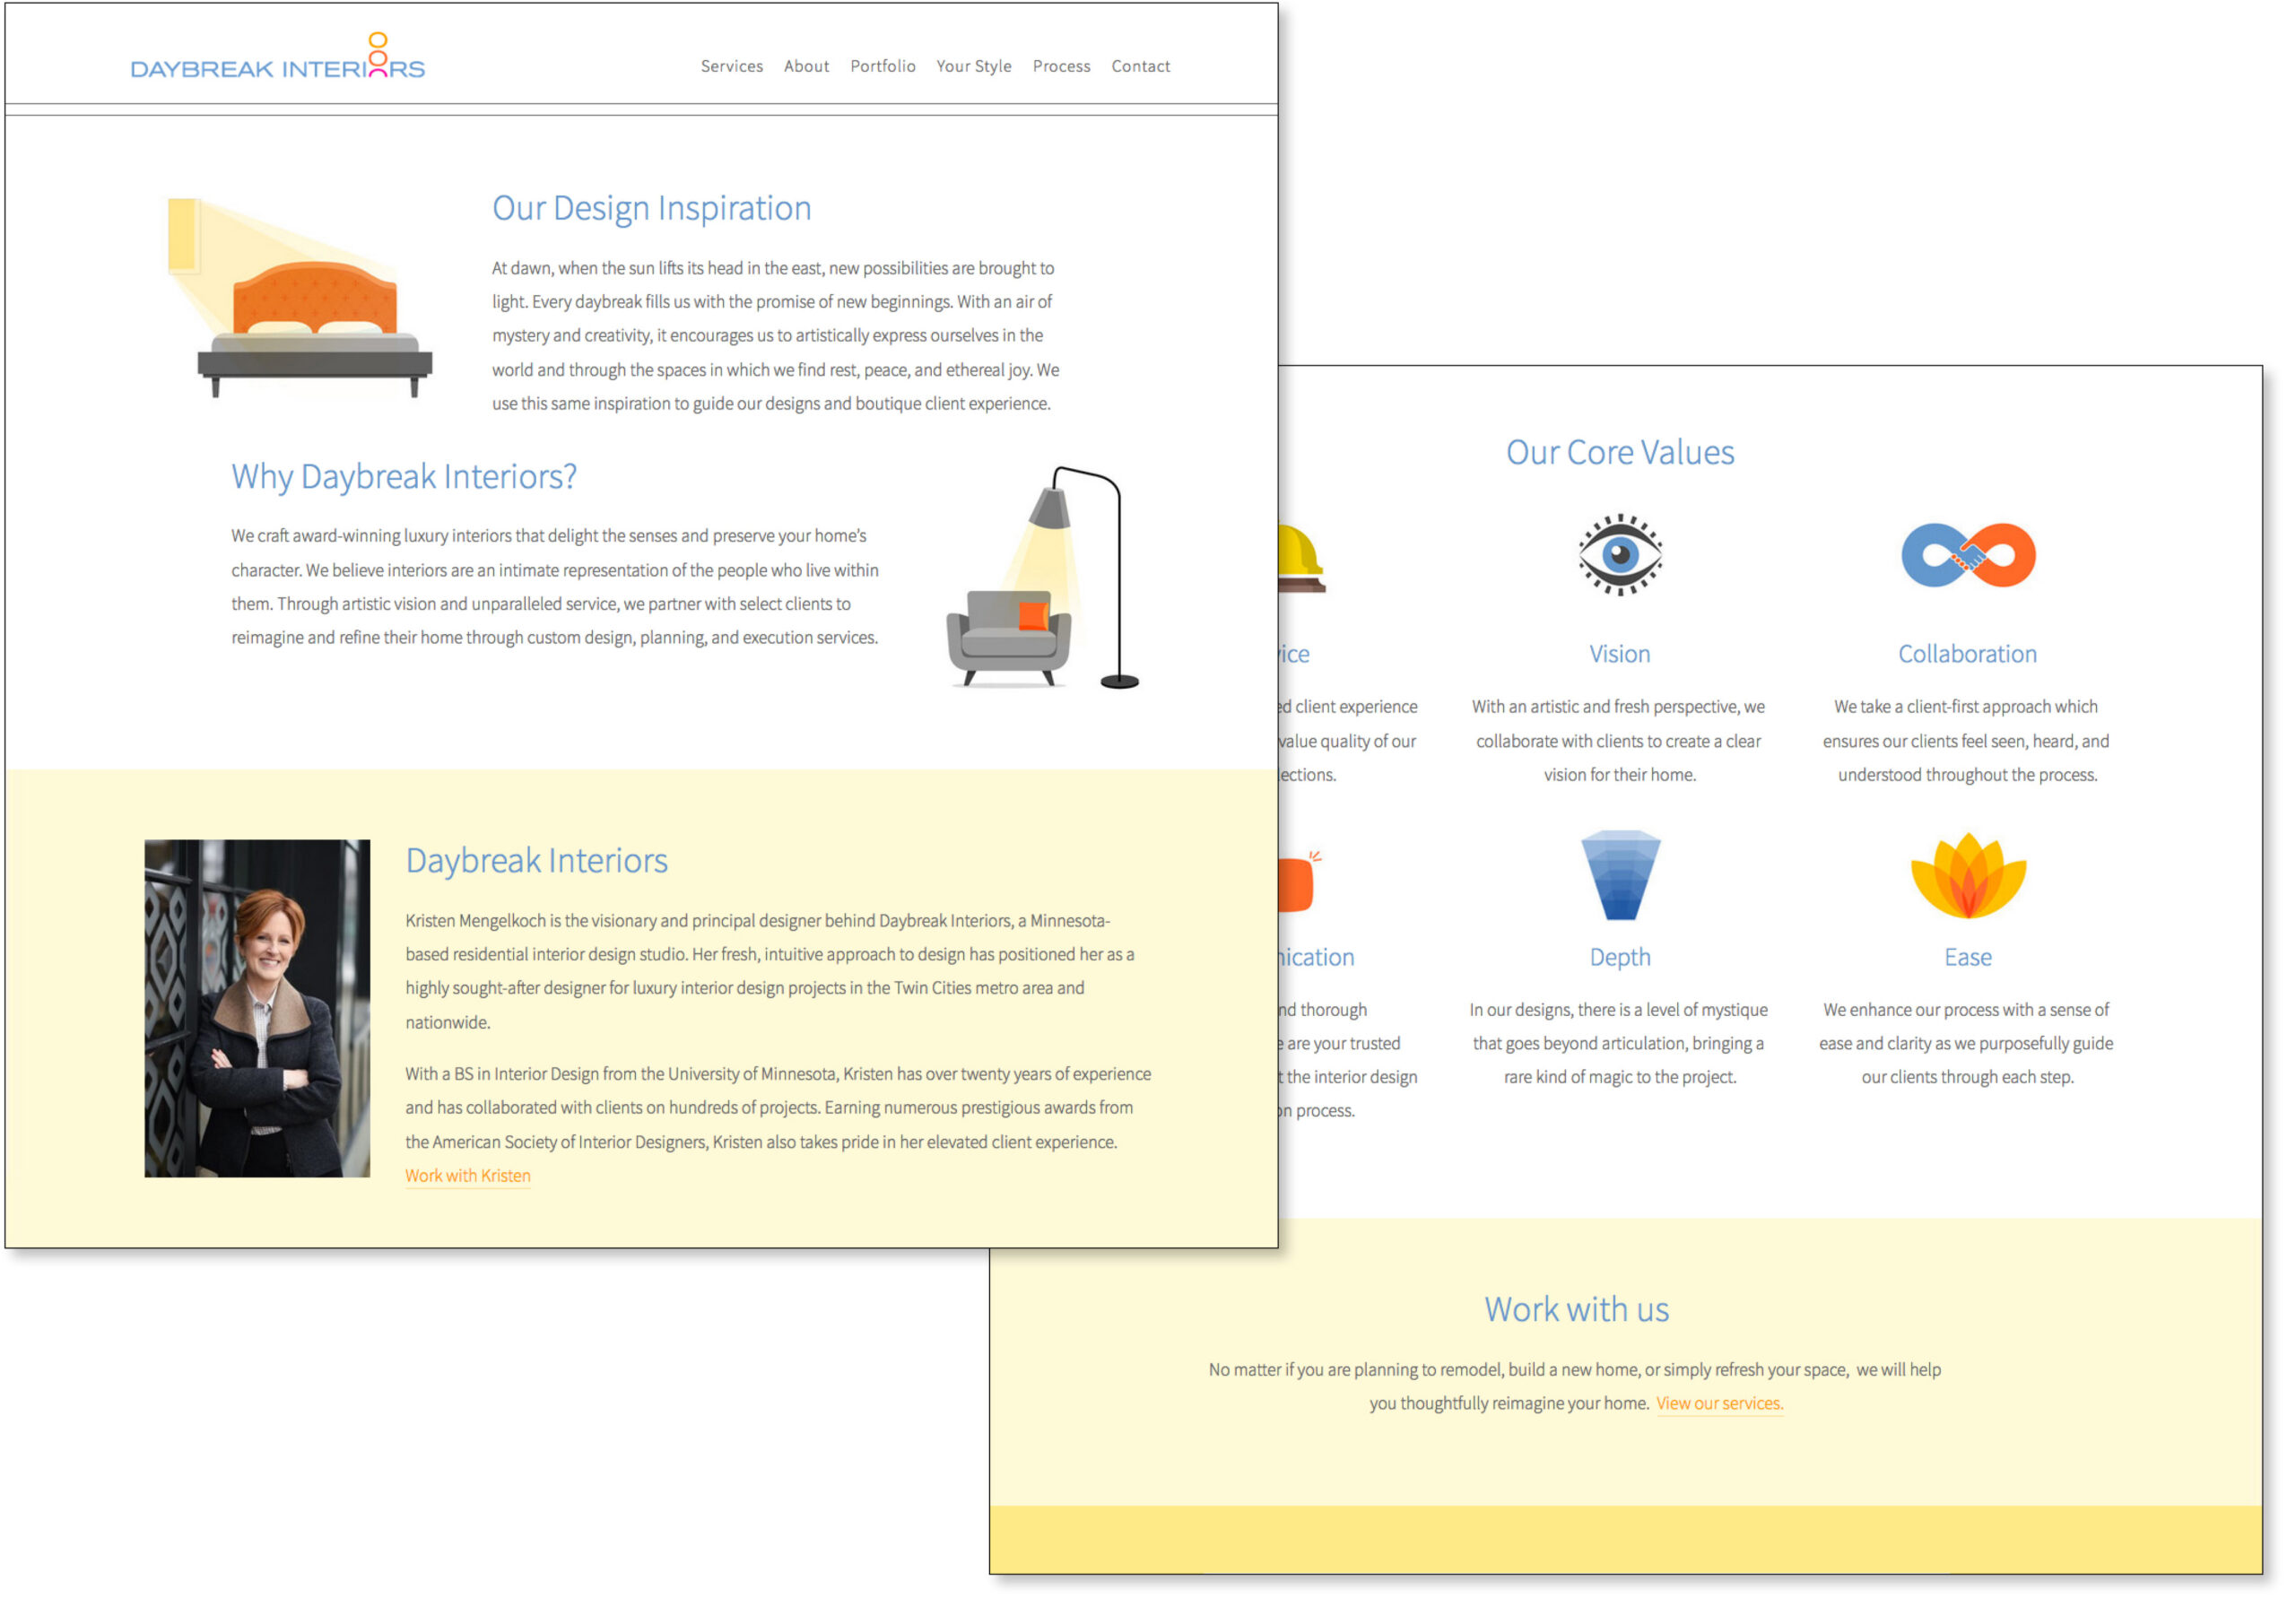 Image of the About page of the Daybreak website, featuring soft yellows and clean graphics in gray, blue and orange.